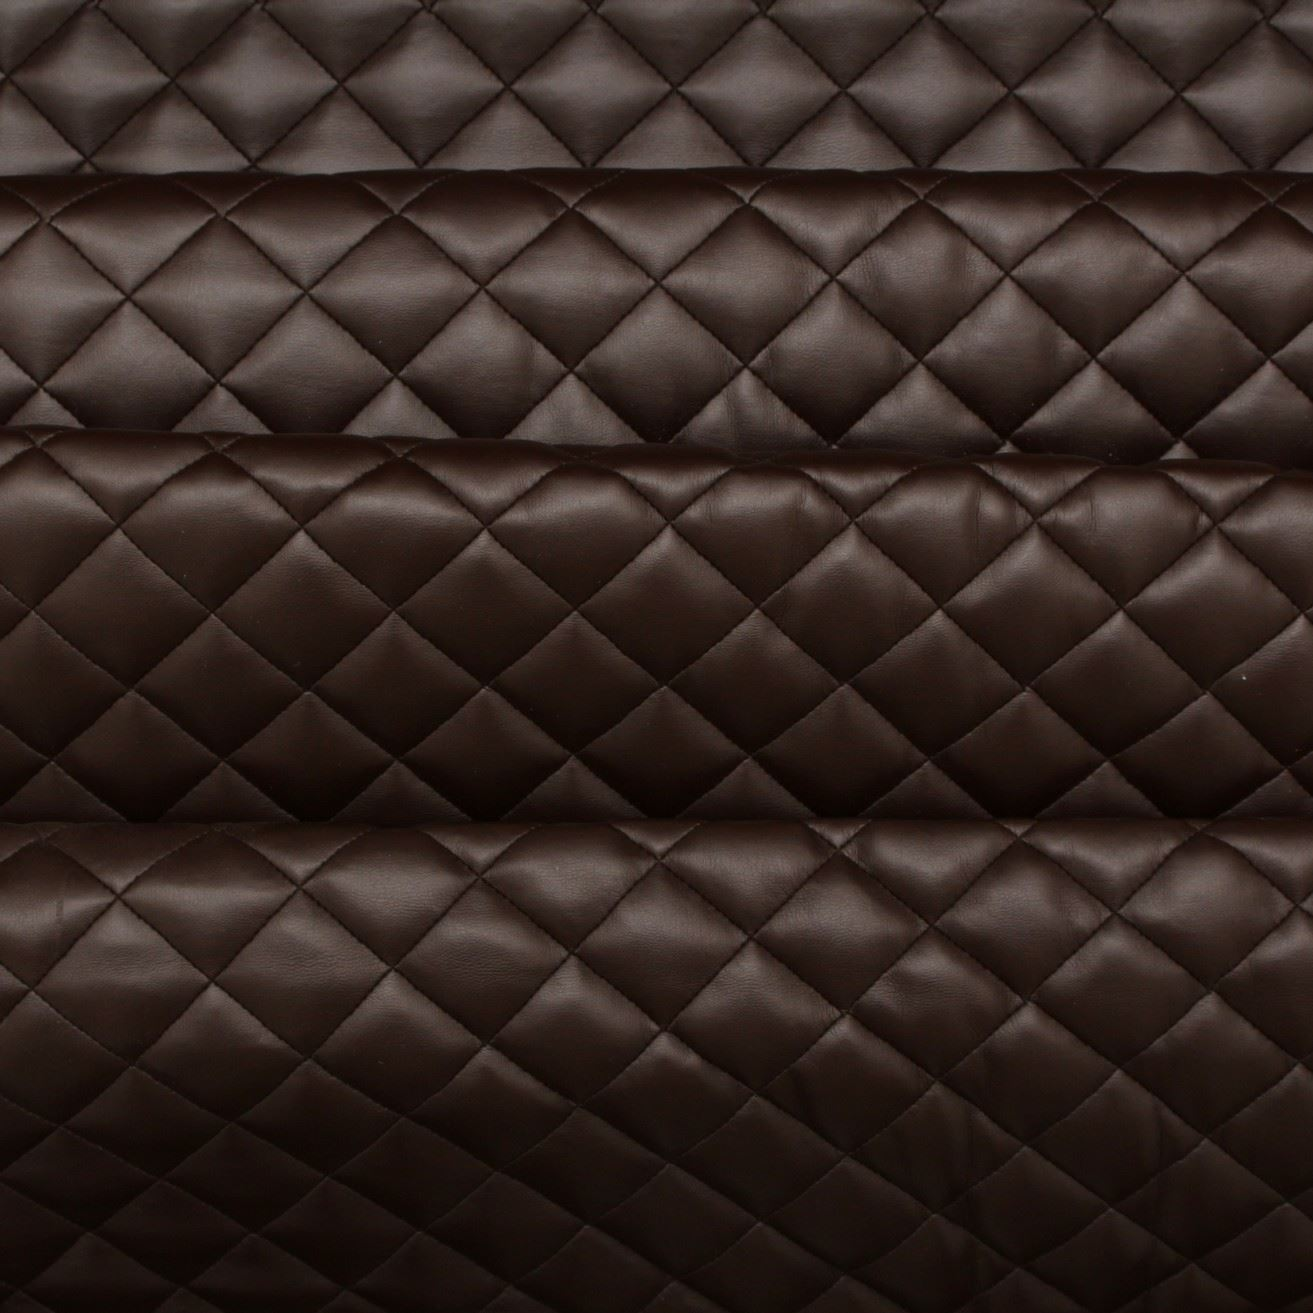 Quilted leather customized interior - AOL Image Search Results : leather quilt - Adamdwight.com